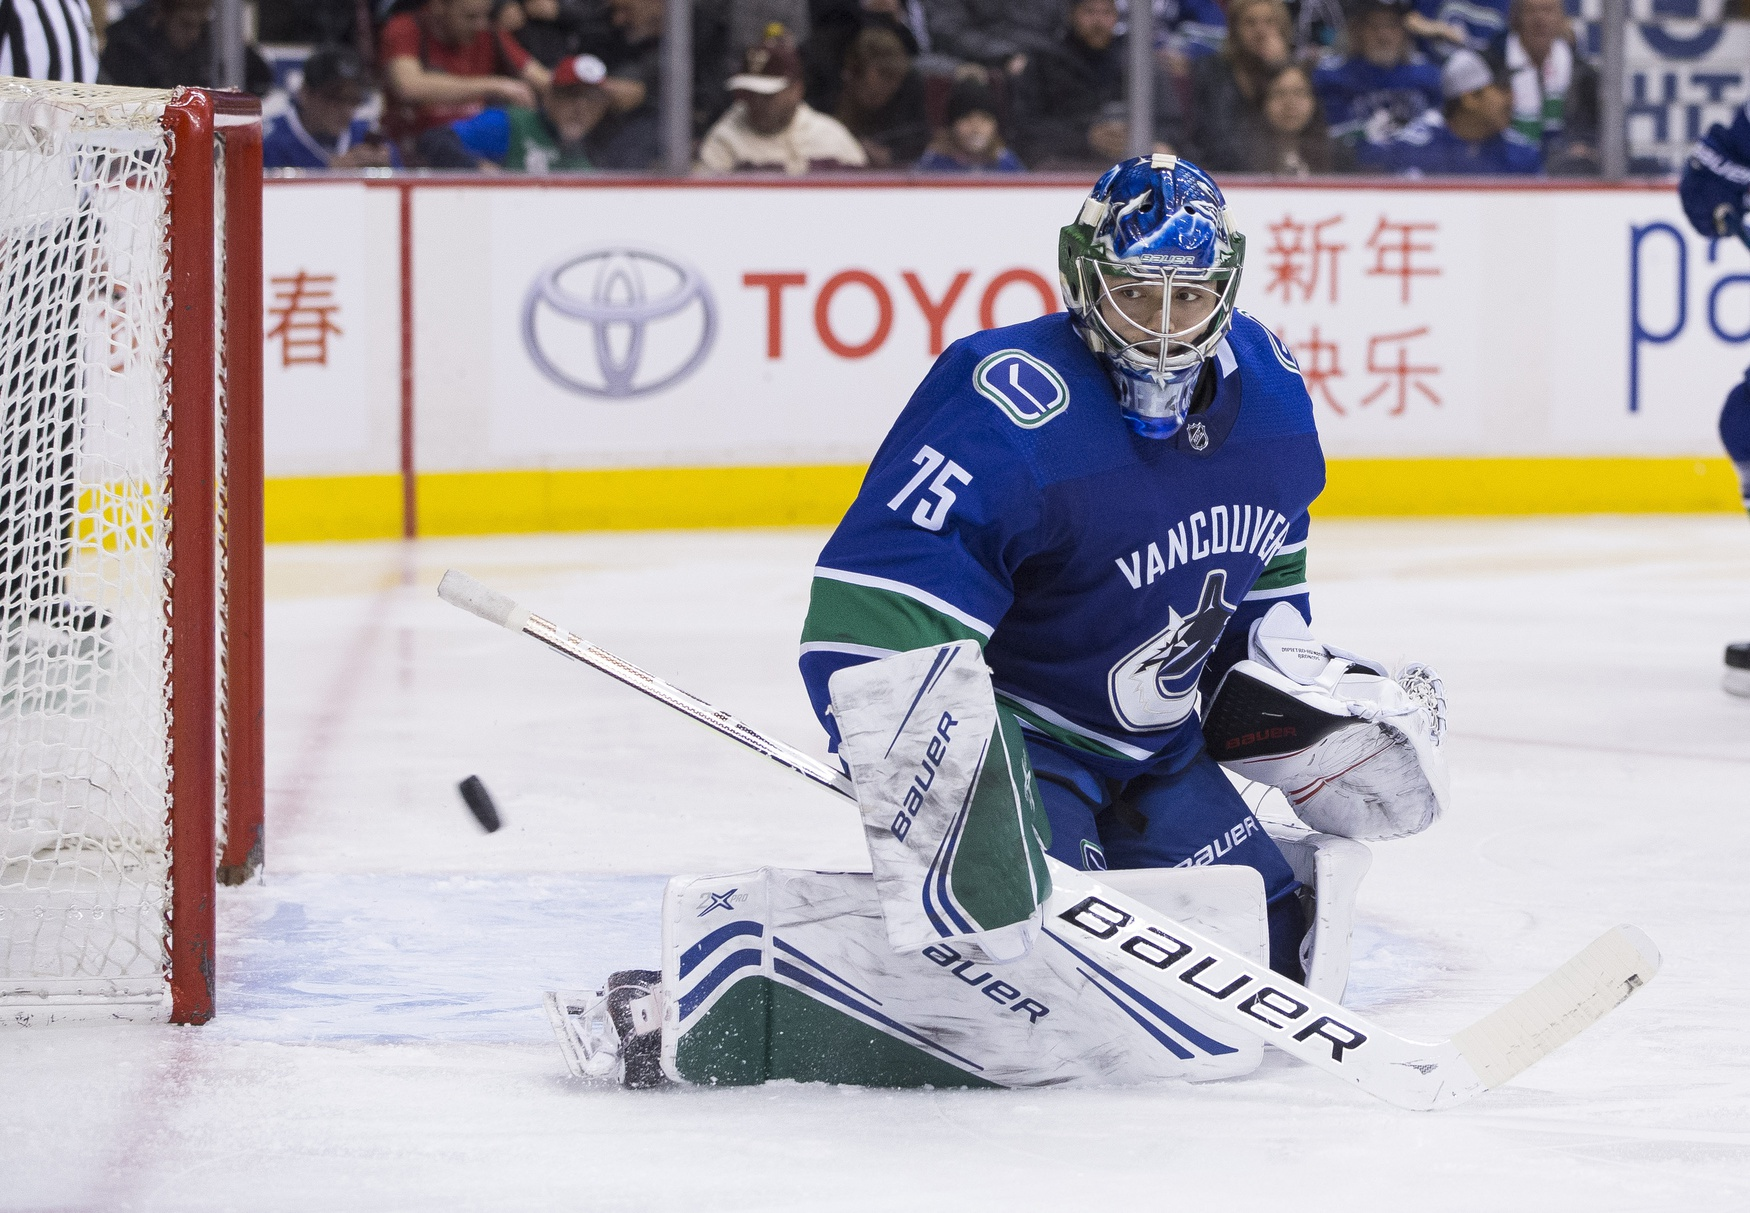 Thatcher Demko in concussion protocol, Mikey DiPietro called up from AHL Utica